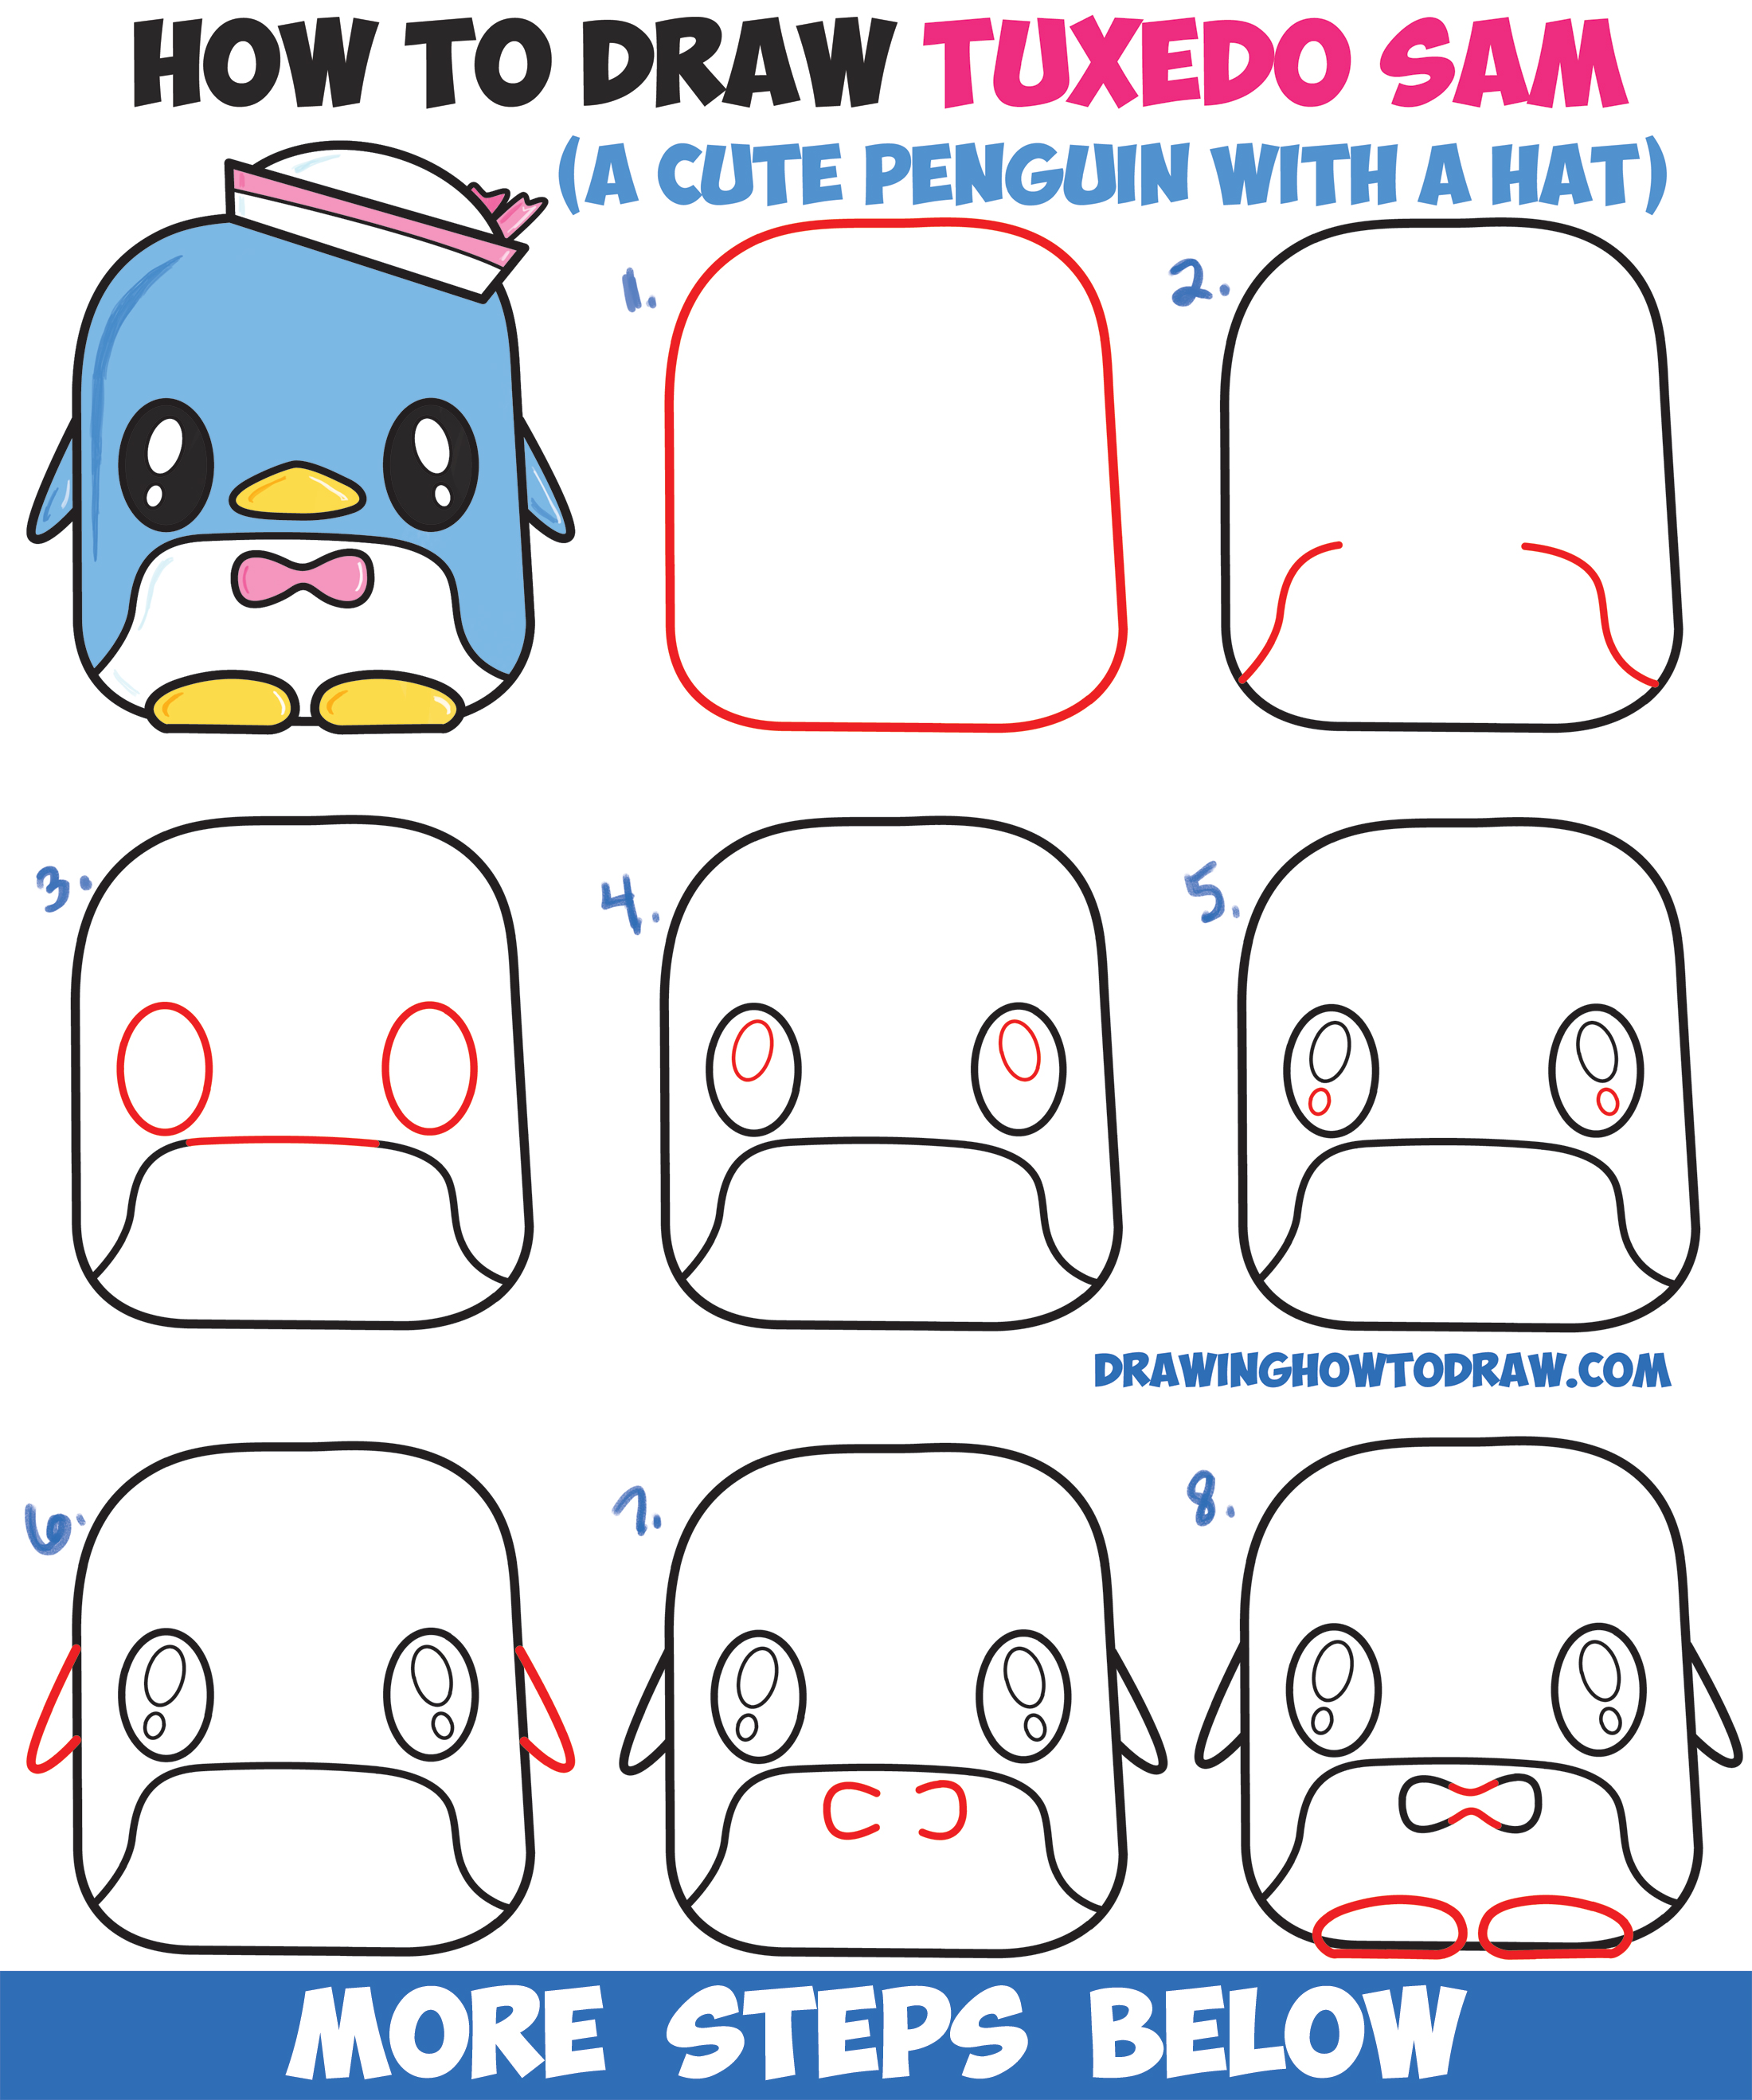 How to Draw Tuxedo Sam (Cute Kawaii Penguin) From Hello Kitty Easy Step by Step Drawing Tutorial